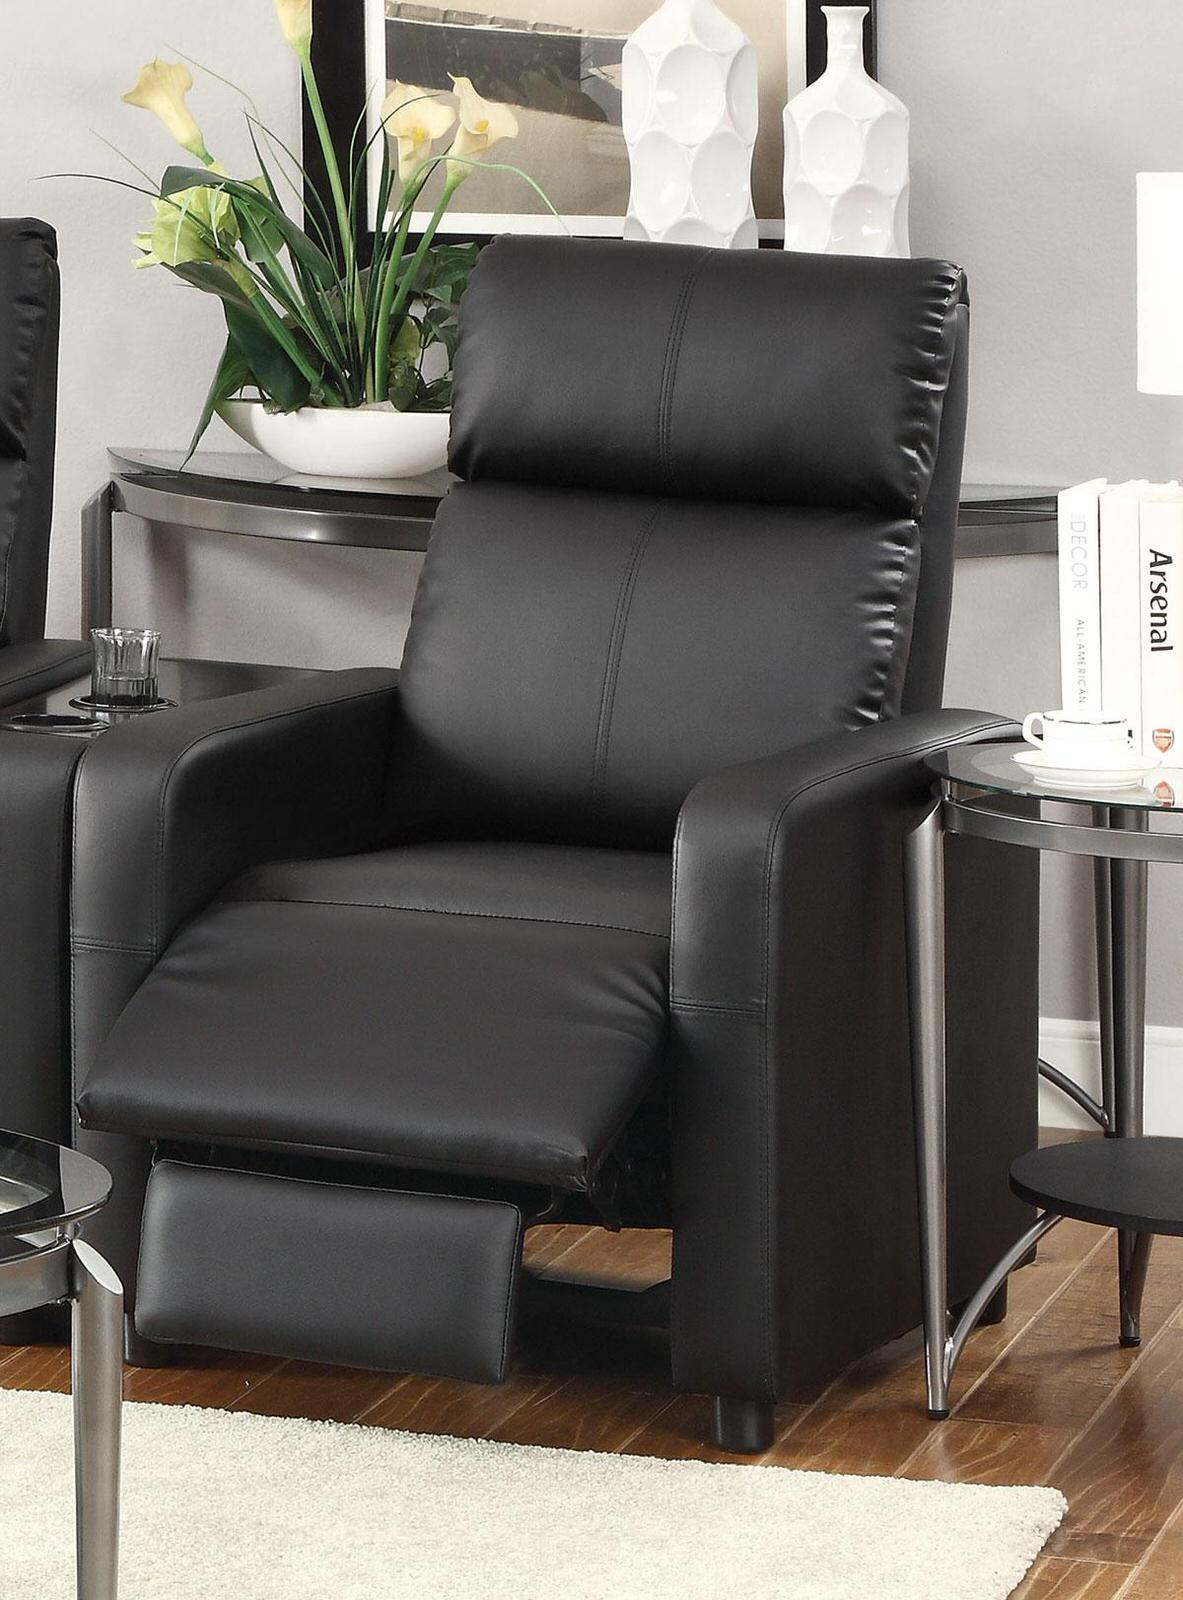 600181 Push Back Chair Recliner Black Vinyl by Coaster